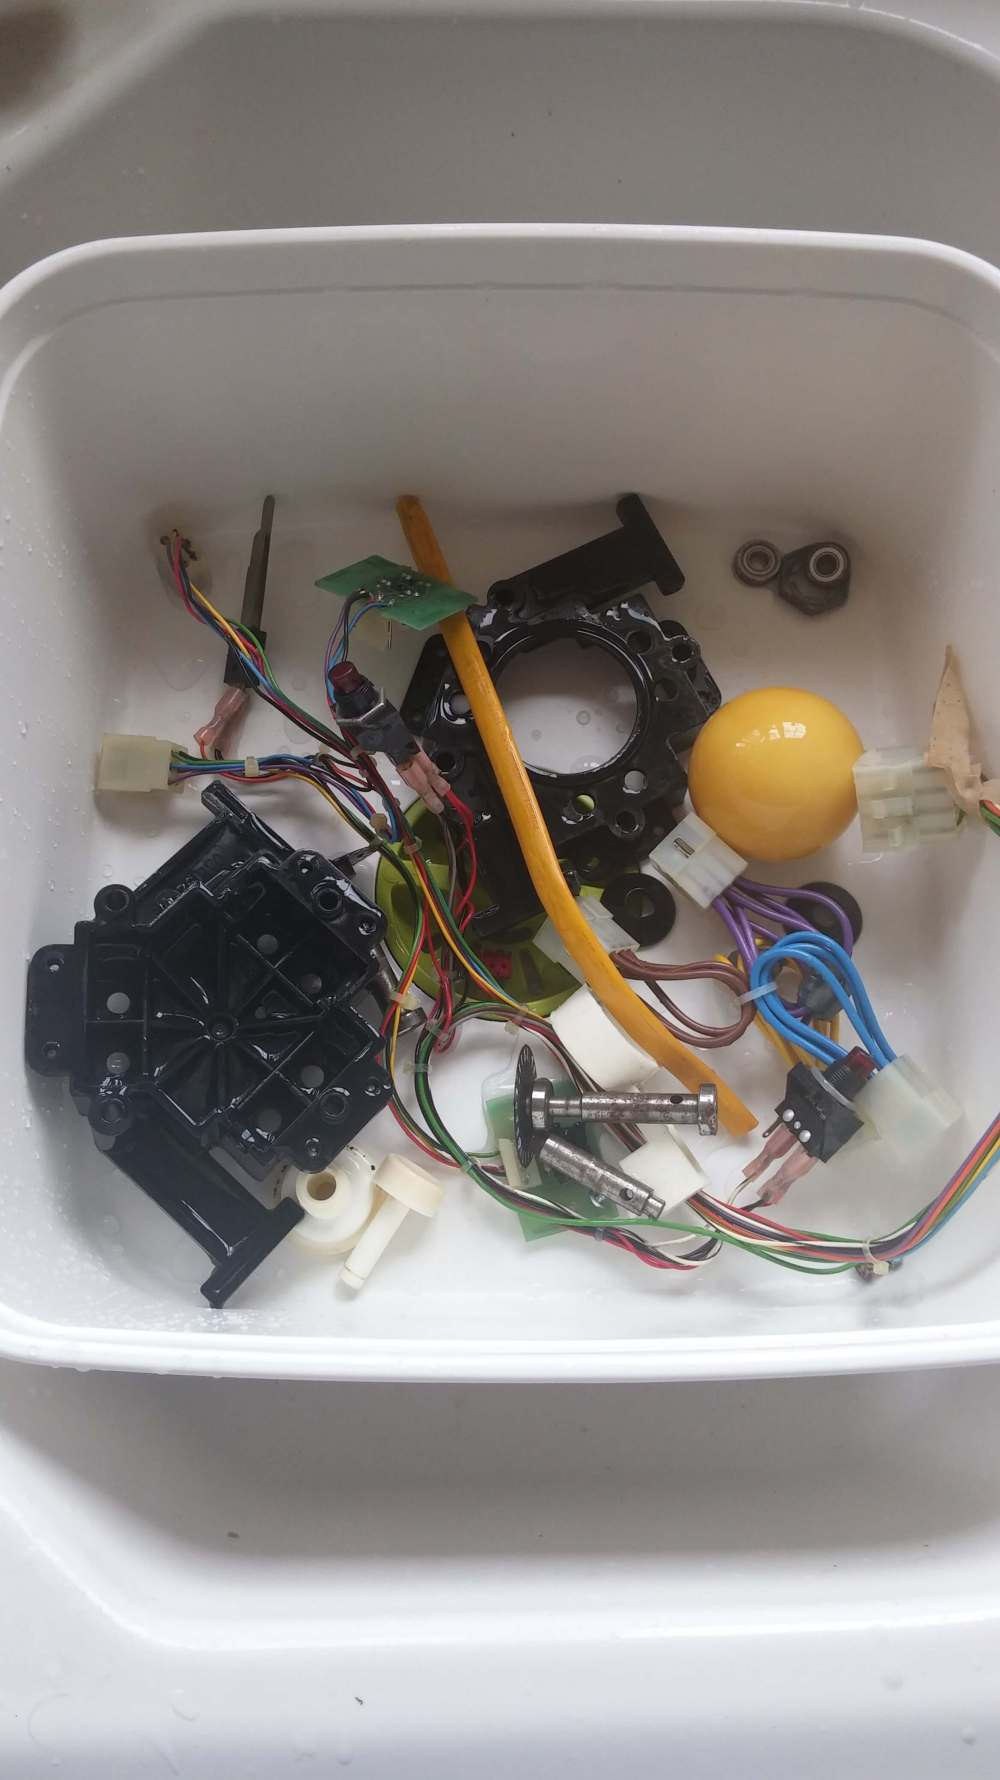 Atari Centipede Upright Restoration 1 The Arcade Blogger Washer Wiring Harness Repair Together With Tv Circuit Board 20160515 164438 Min